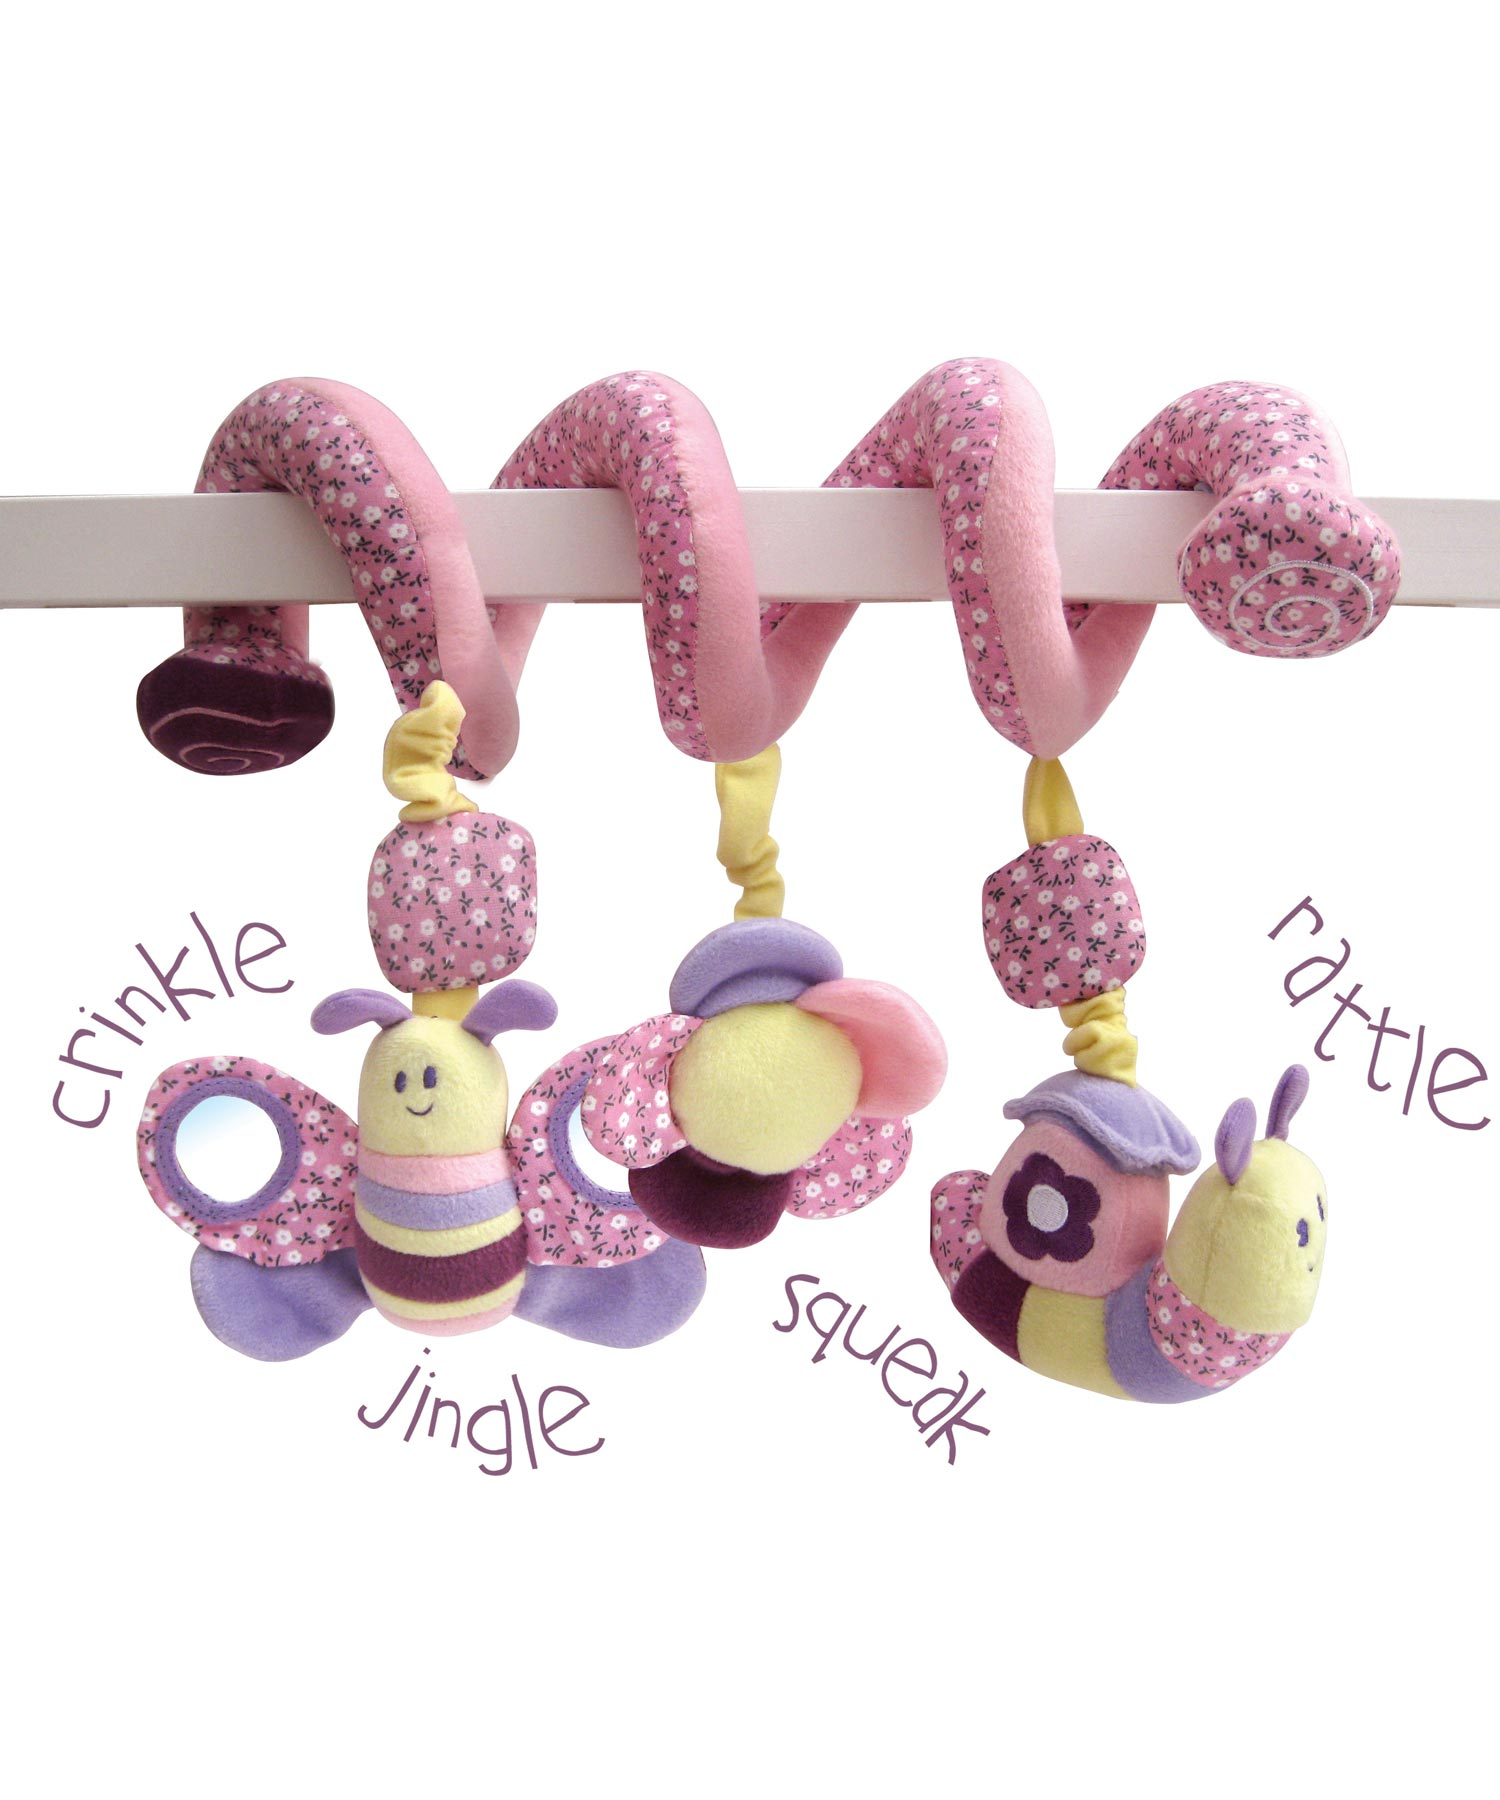 soft spiral cot toys